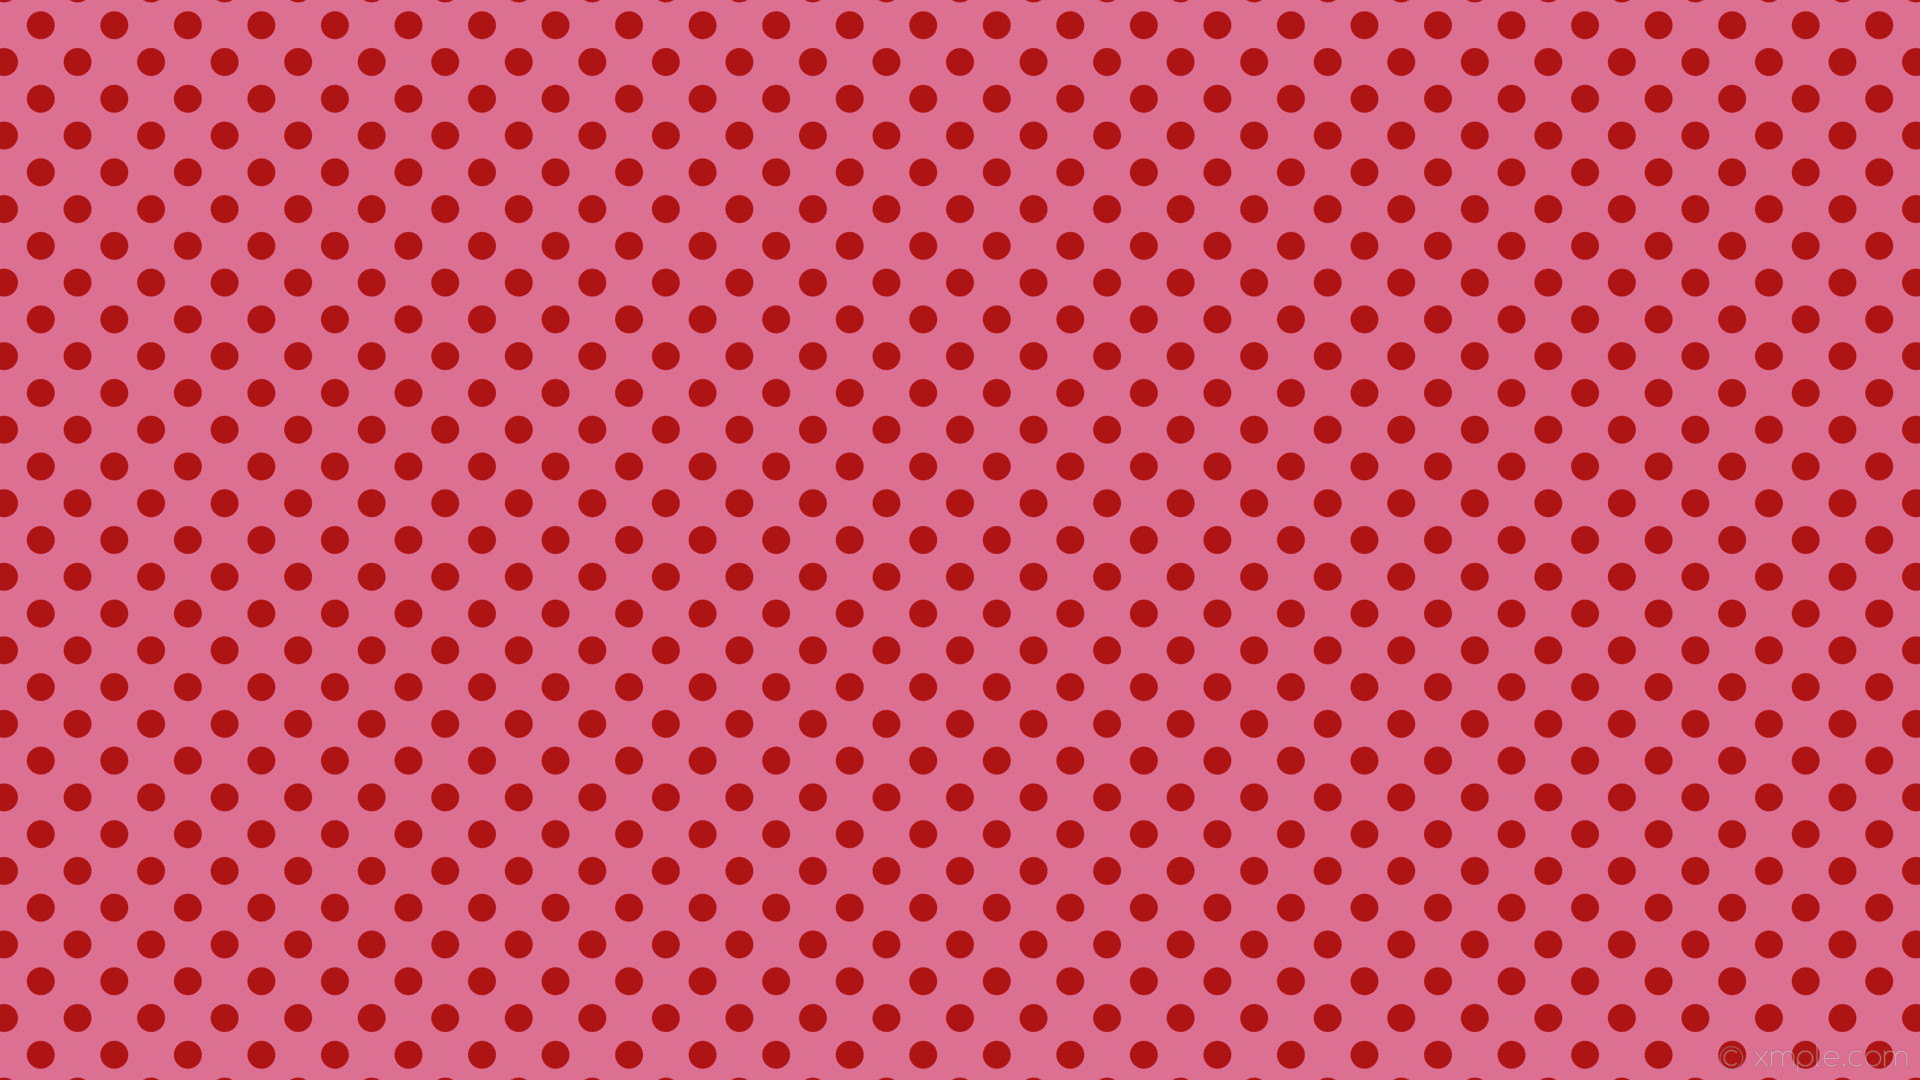 1920x1080 wallpaper polka red spots pink dots pale violet red #db7093 #af1414 225°  28px